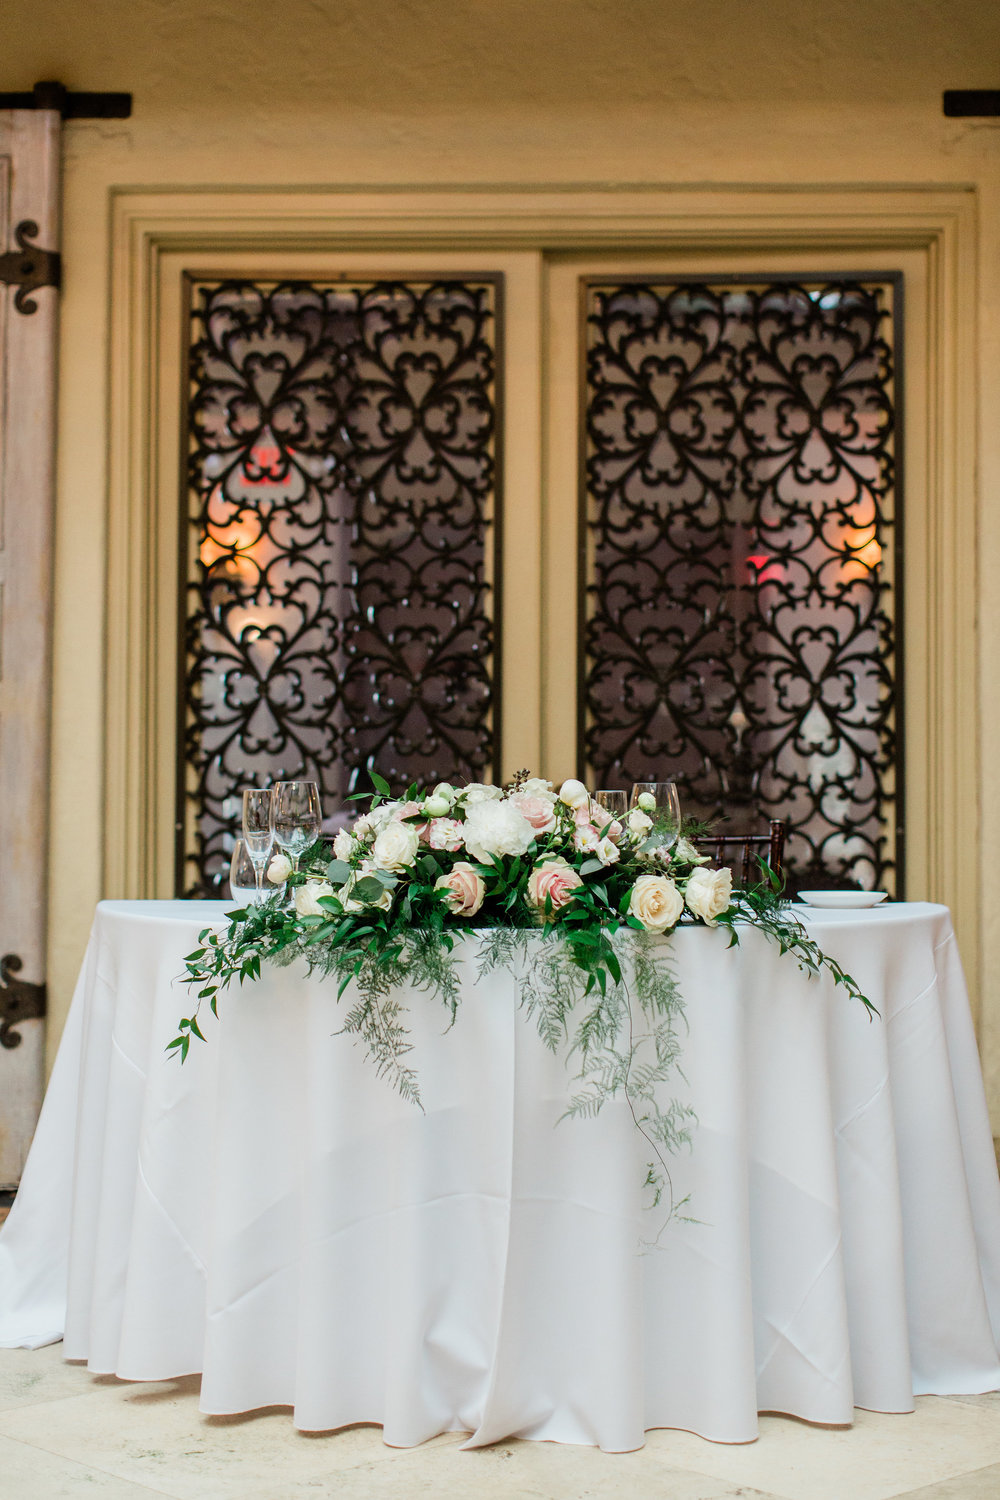 Blush and Greenery Wedding at the Addison, Boca Raton Wedding Planning by Fleeting Elegance